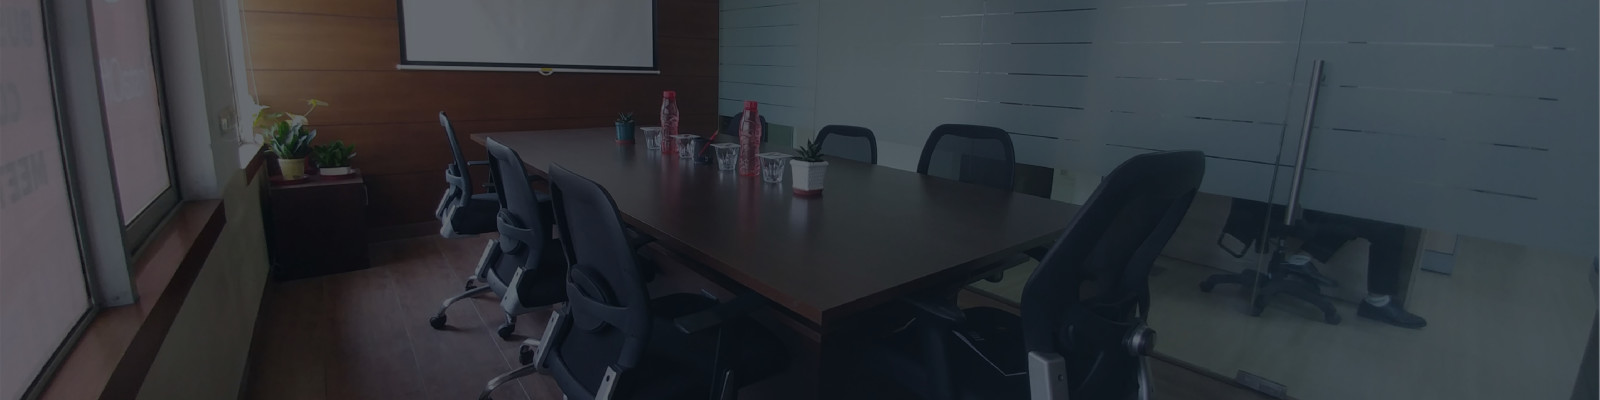 Meeting rooms in Gurgaon